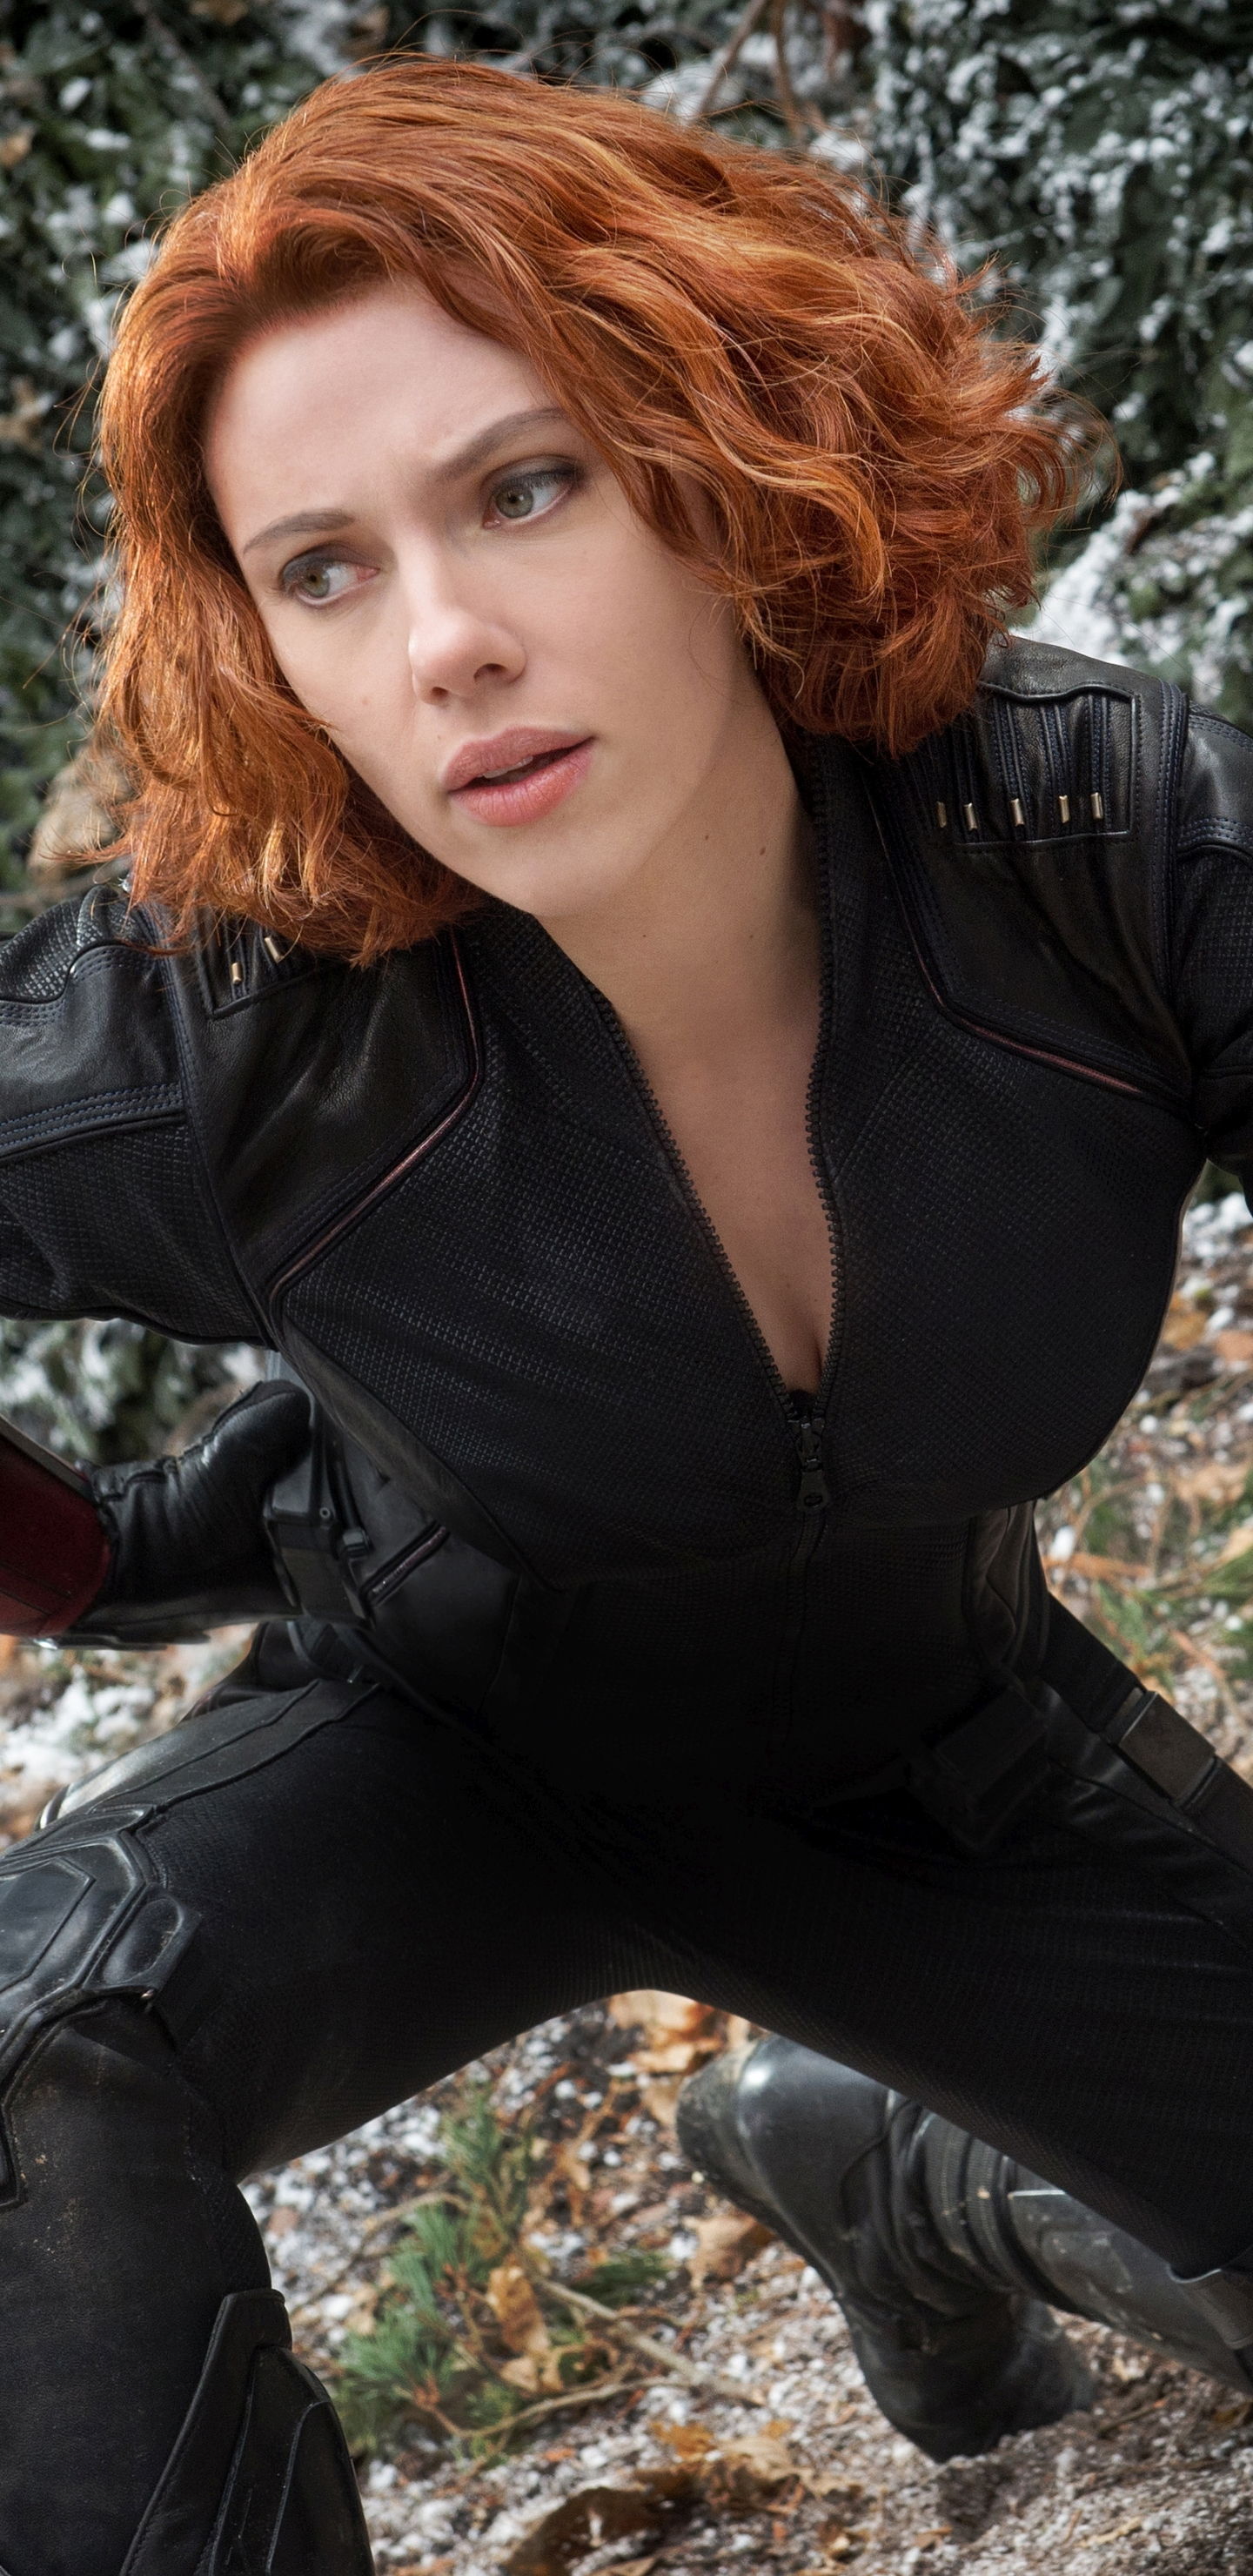 Movie Avengers Age Of Ultron 1440x2960 Wallpaper Id